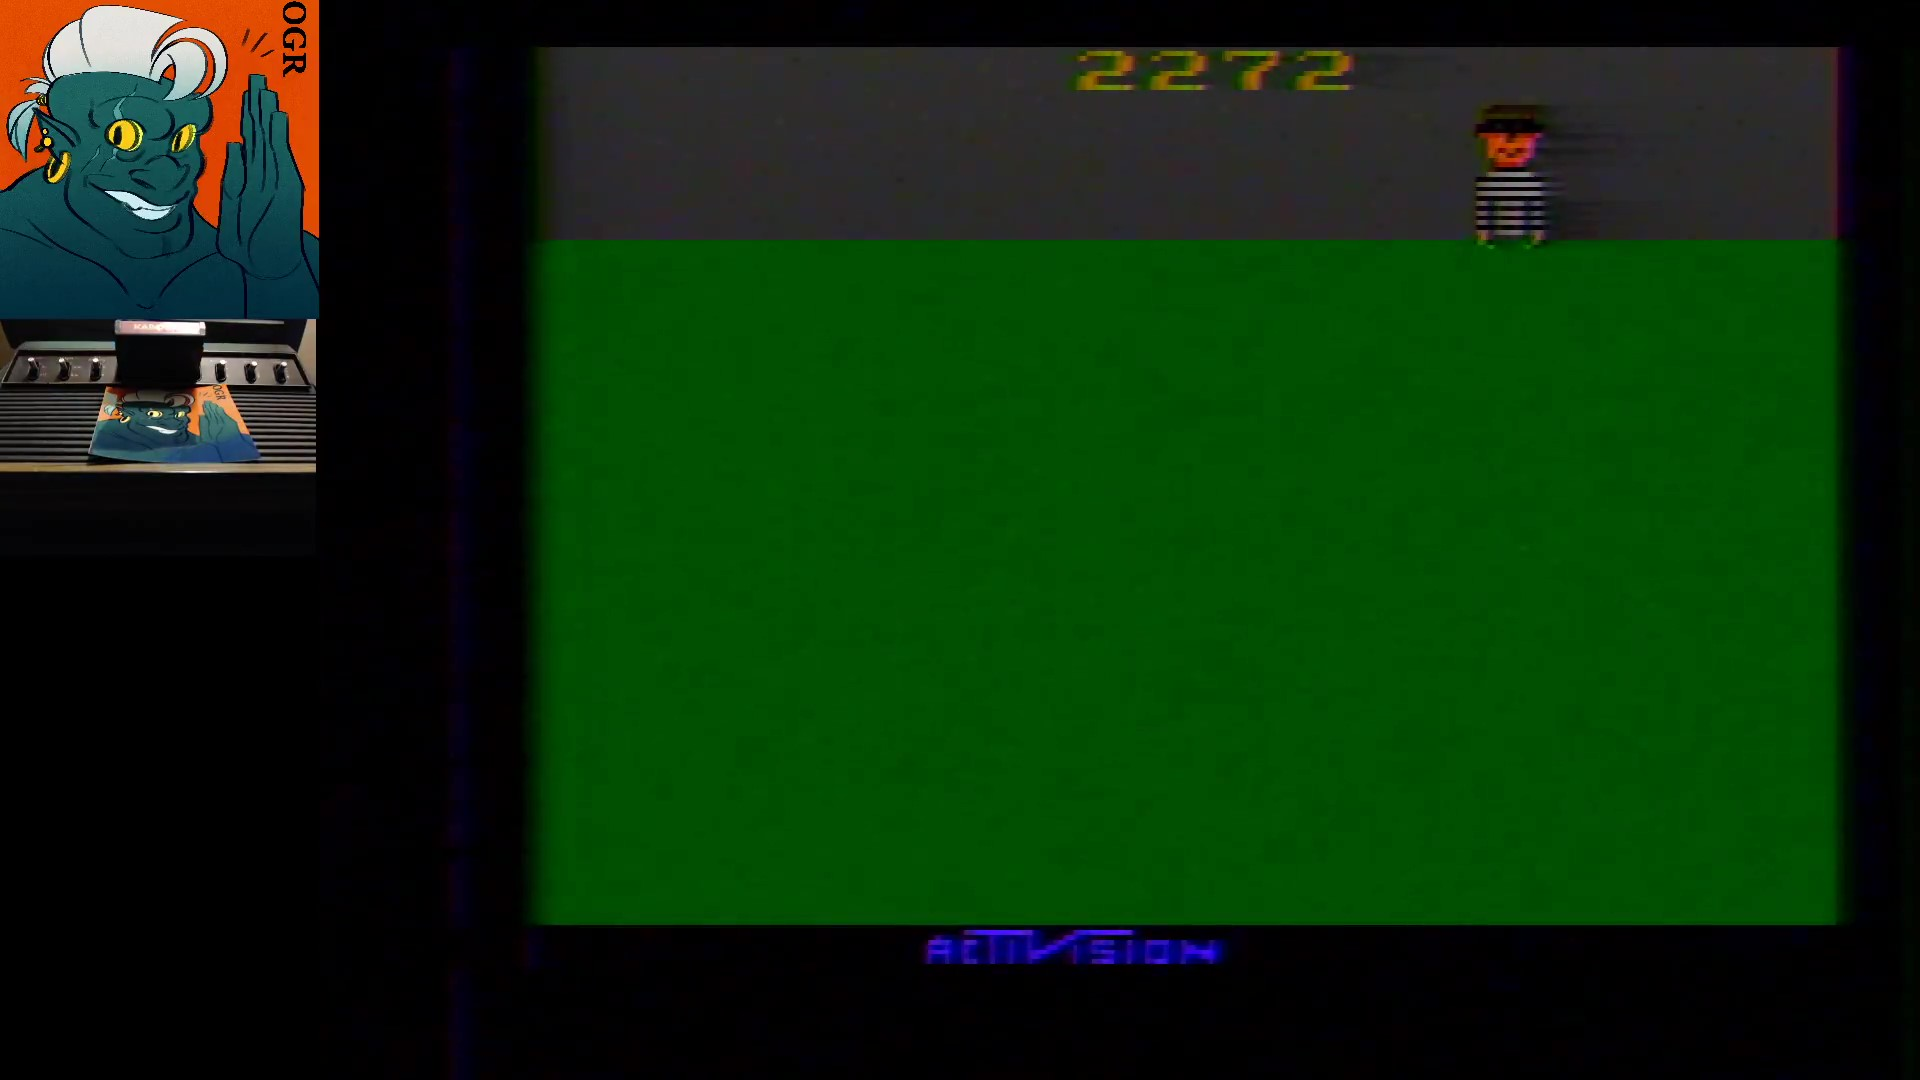 AwesomeOgre: Kaboom! (Atari 2600 Expert/A) 2,272 points on 2020-02-21 10:11:03